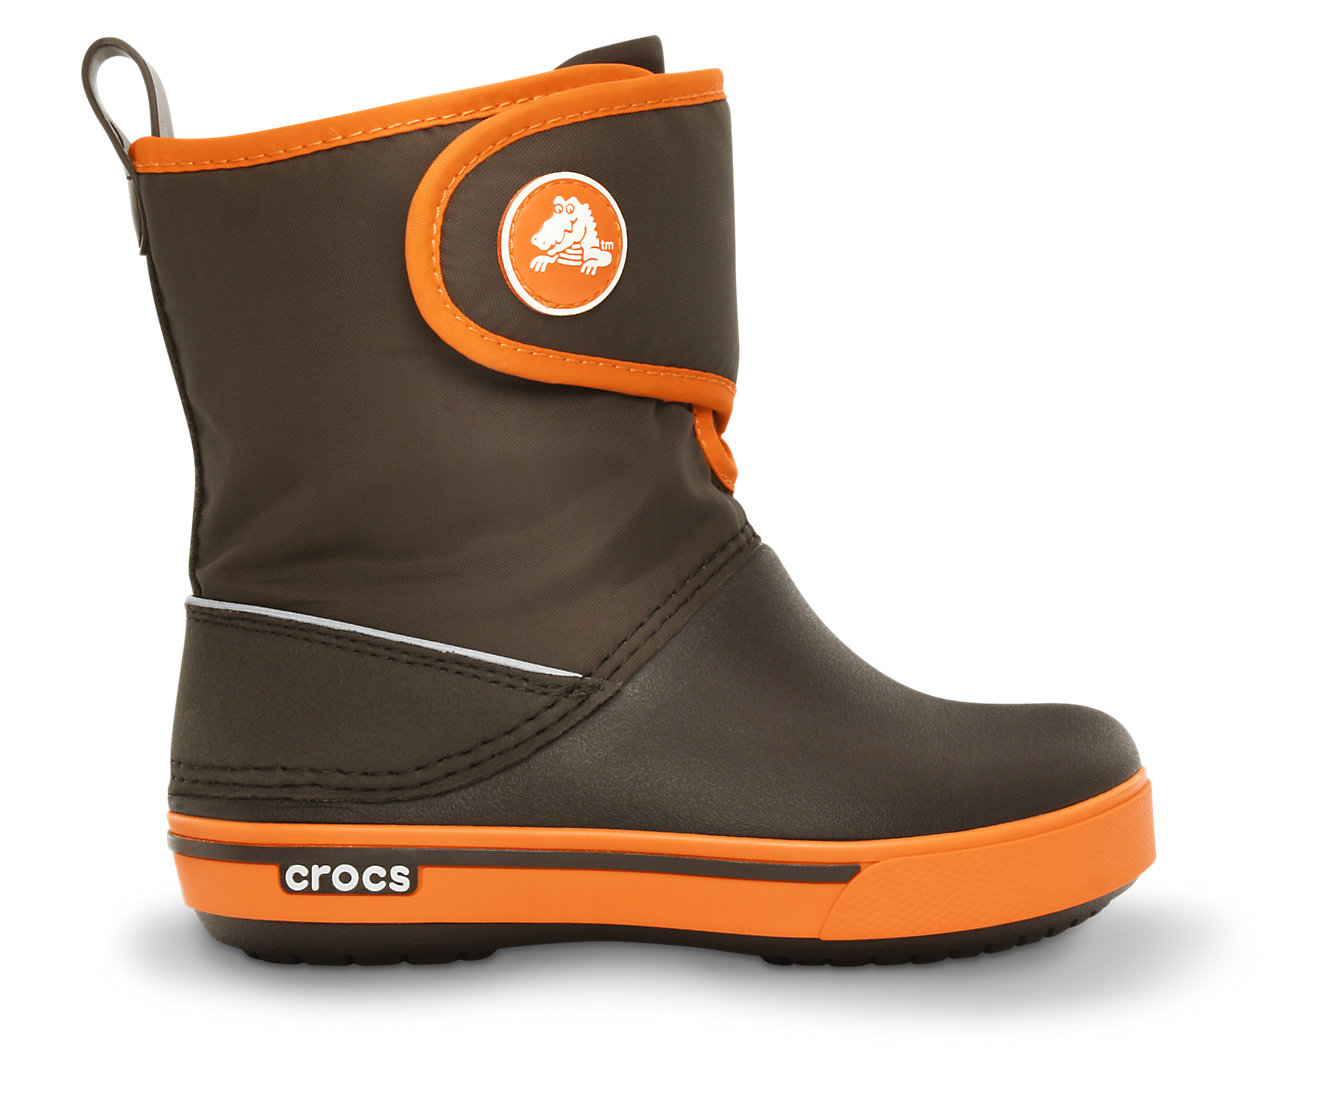 9a5c166e7 Up To 60% Discount In The Winter Sale at Crocs